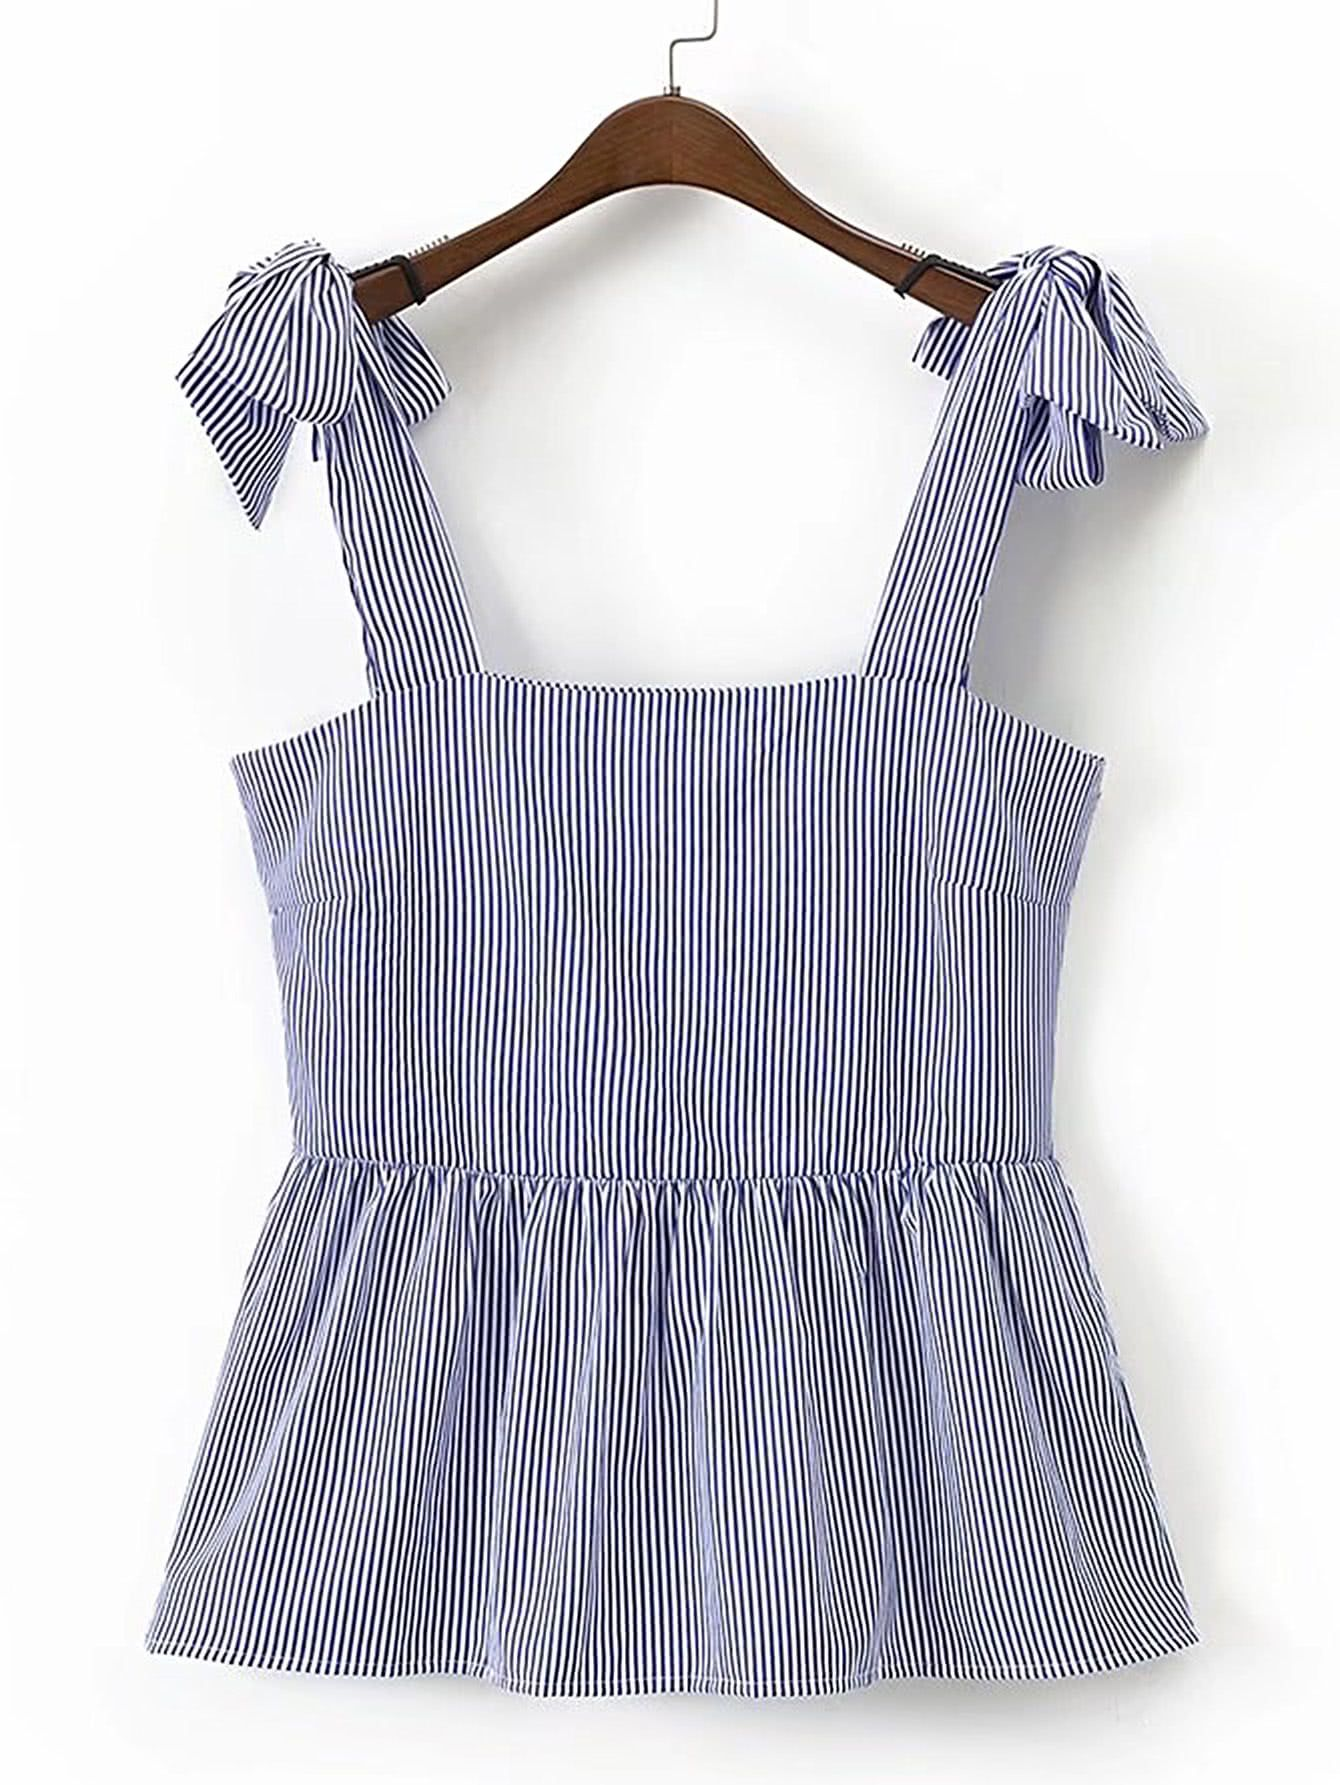 Shop Bow Tie Shoulder Pinstripe Top online  SheIn offers Bow Tie Shoulder Pinstripe Top & more to fit your fashionable needs  is part of Blouse designs -